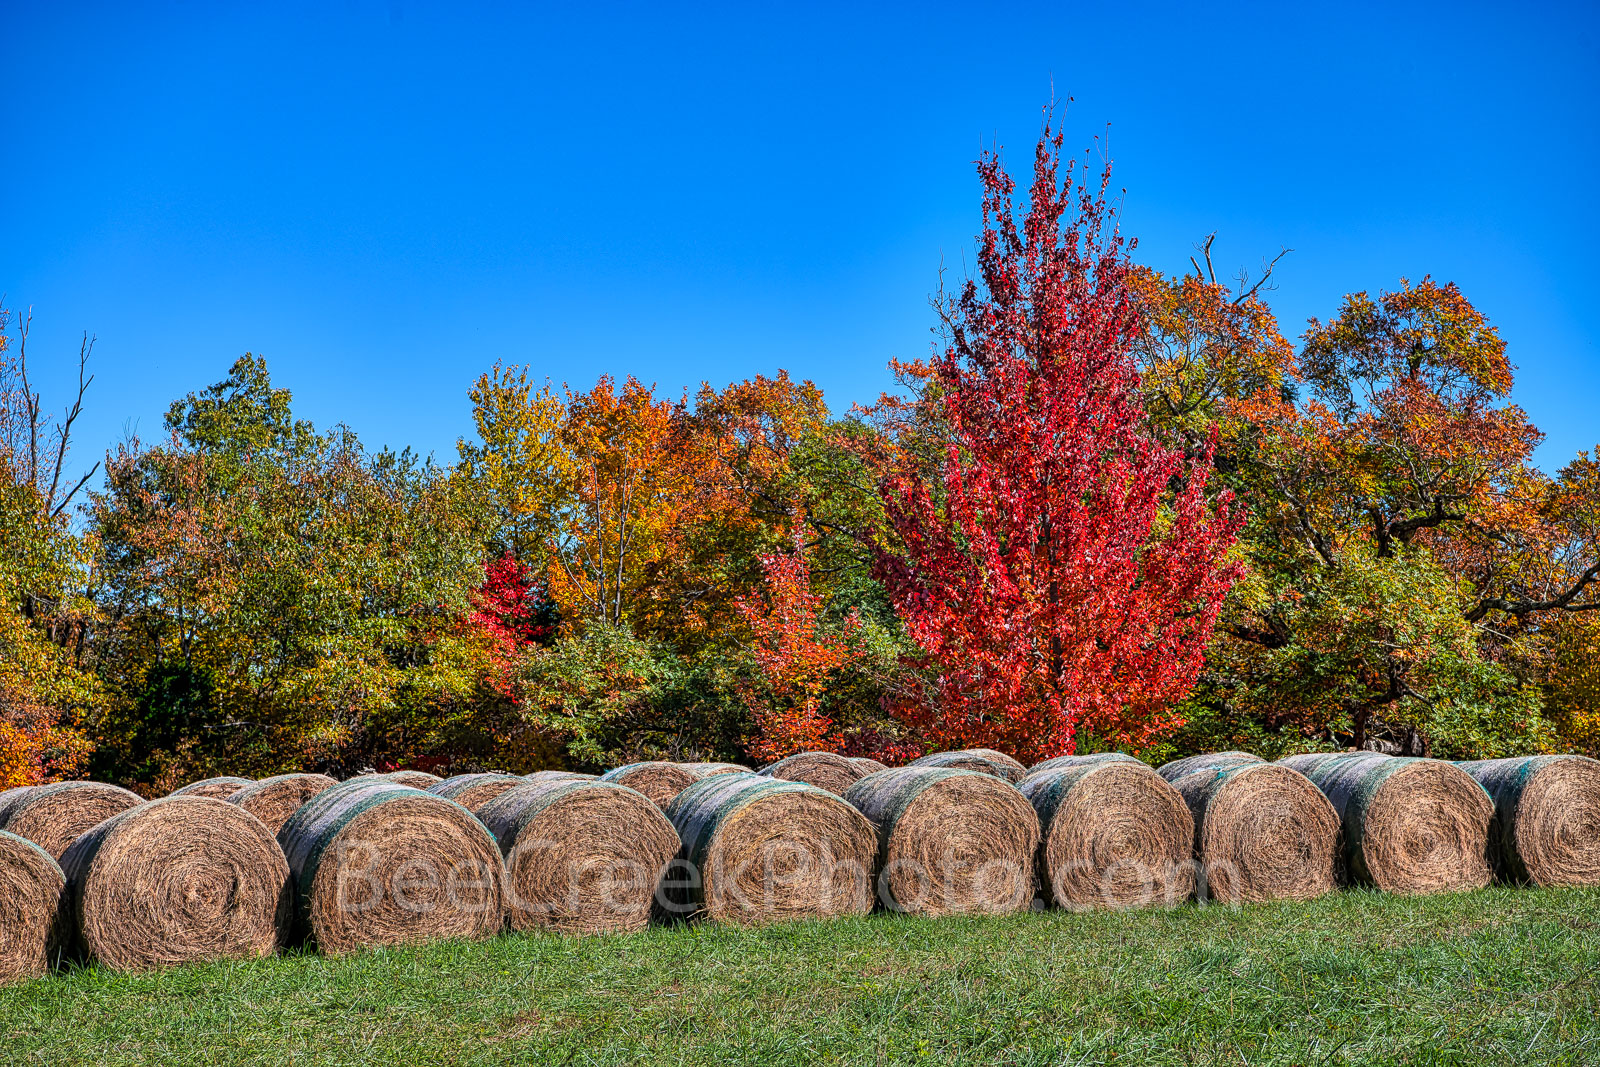 hay bales, autumn, fall, colors, ozark, trees, grass, nature, reds, oranges, greens, season, rural, horizontal, arkansas,maple, october,, photo